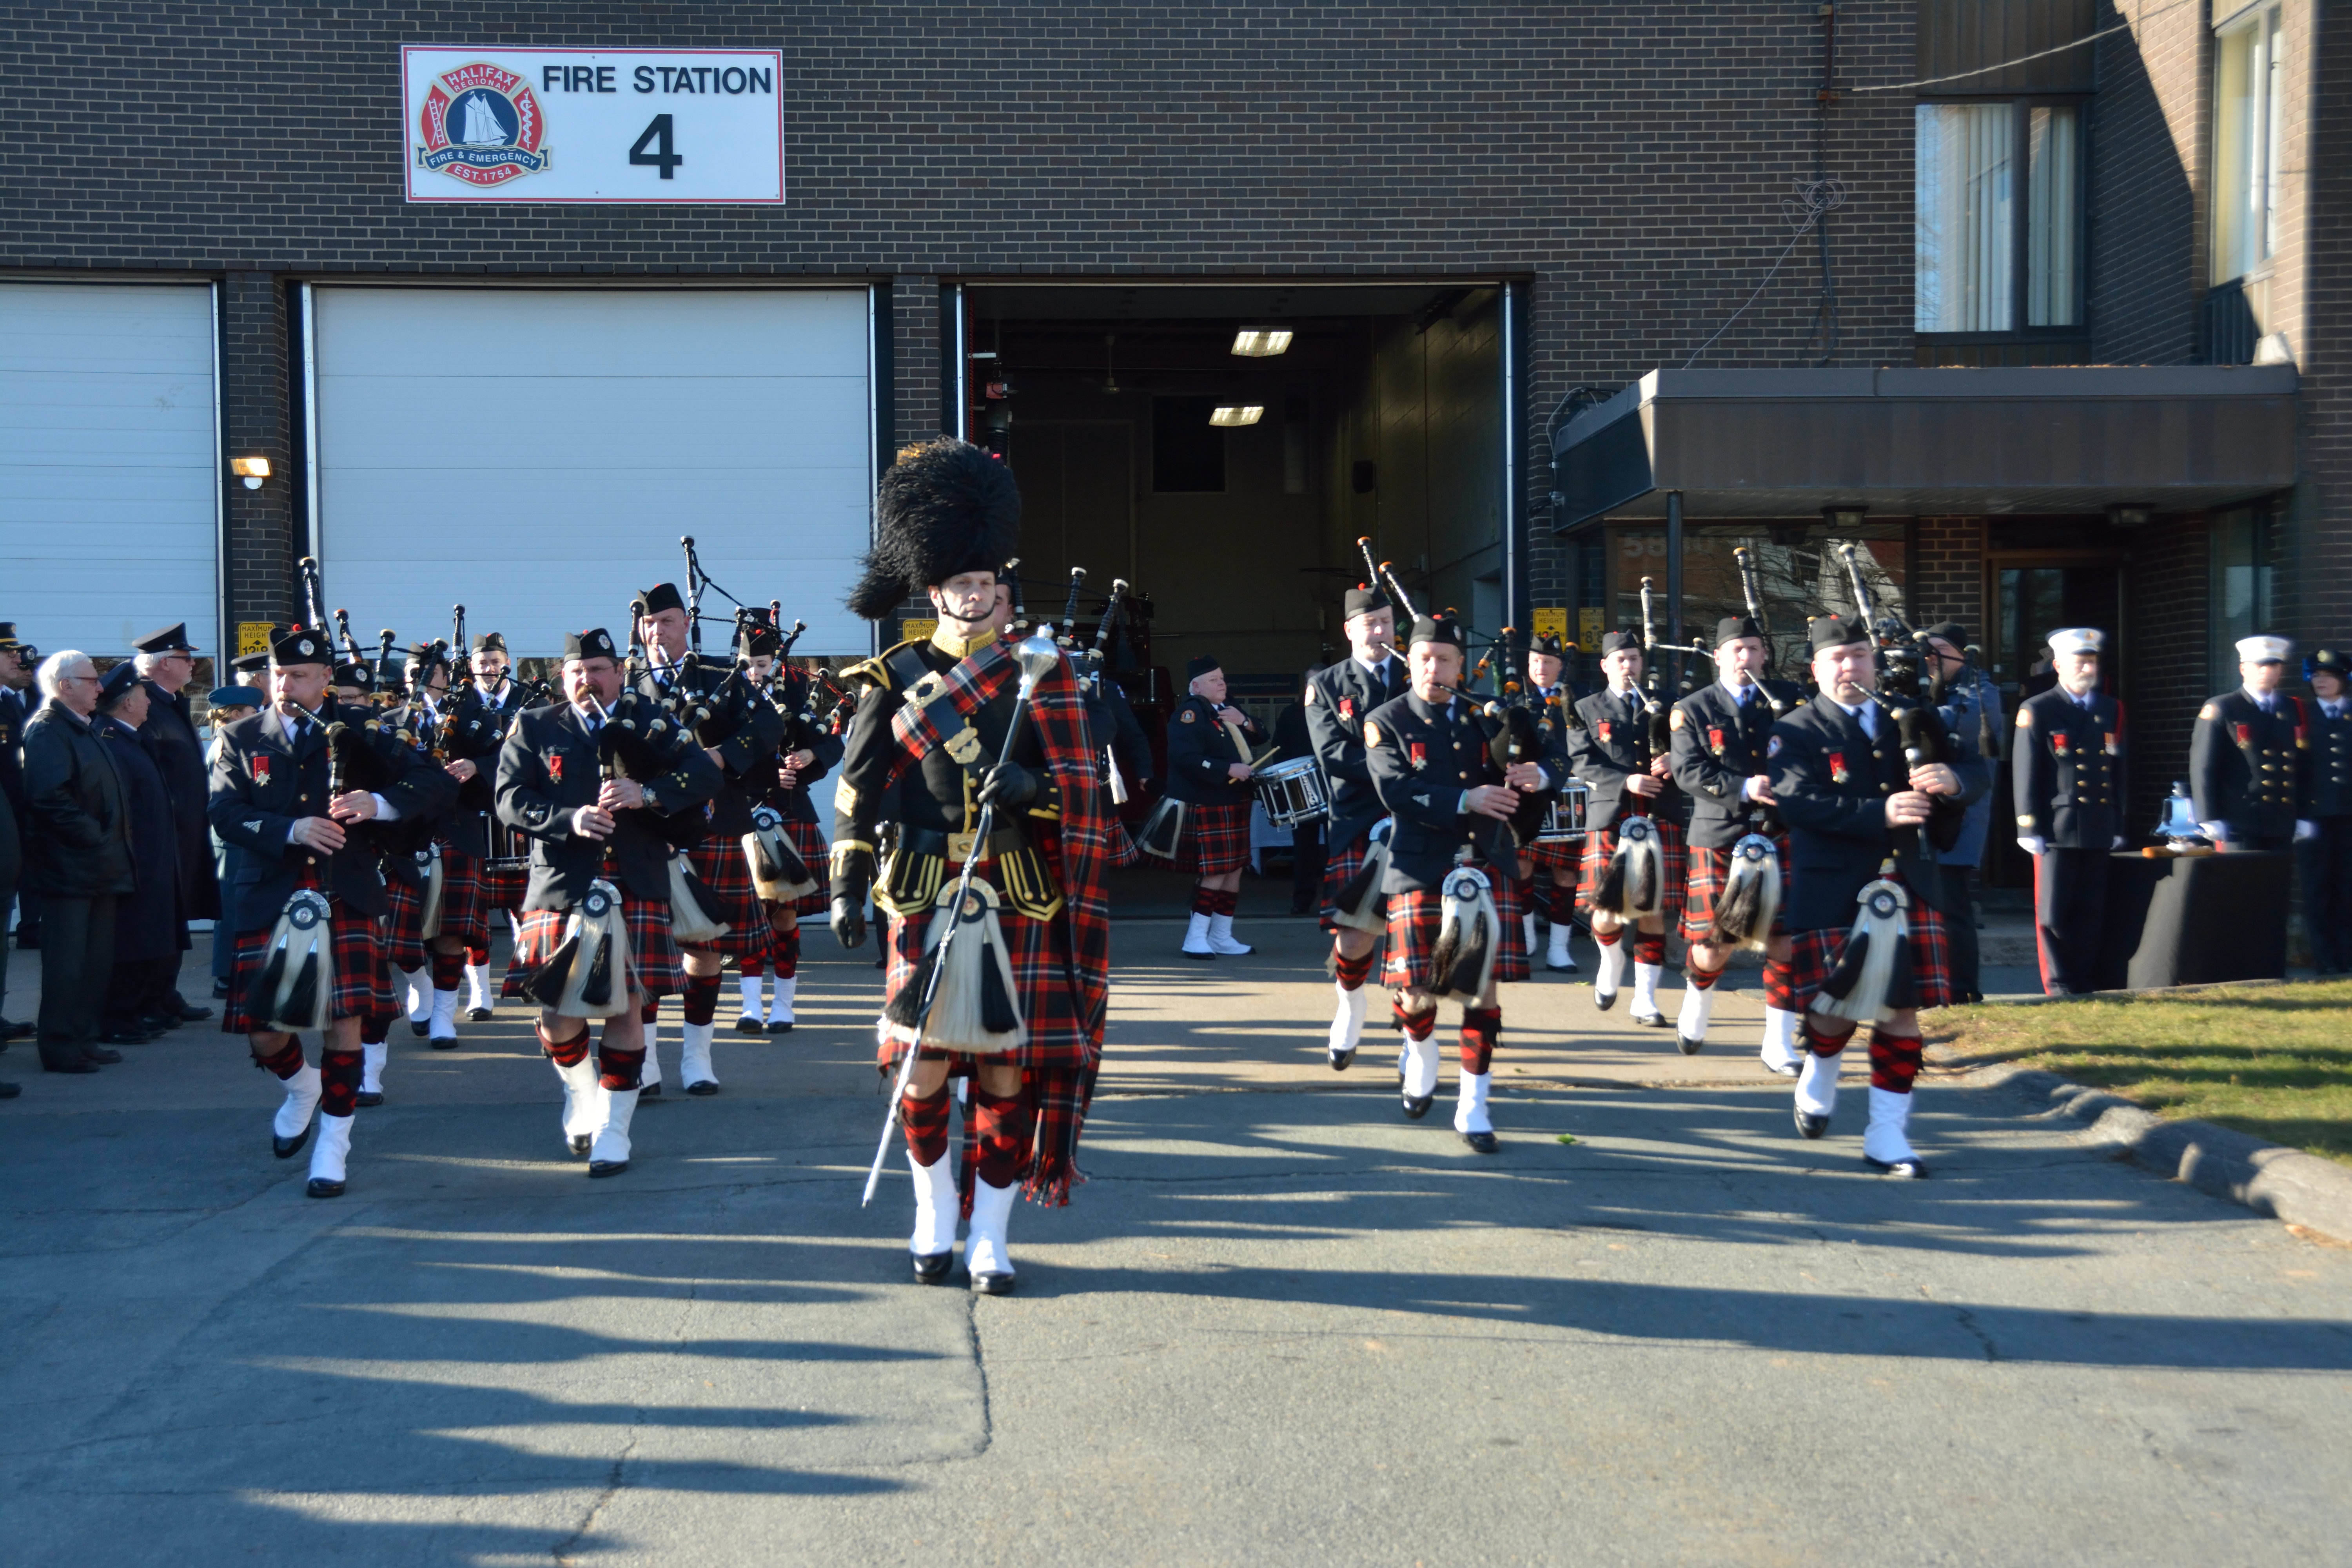 A photo of the Union Fire Club Pipes and Drums playing at the 2016 Halifax Explosion Memorial service at Station 4.